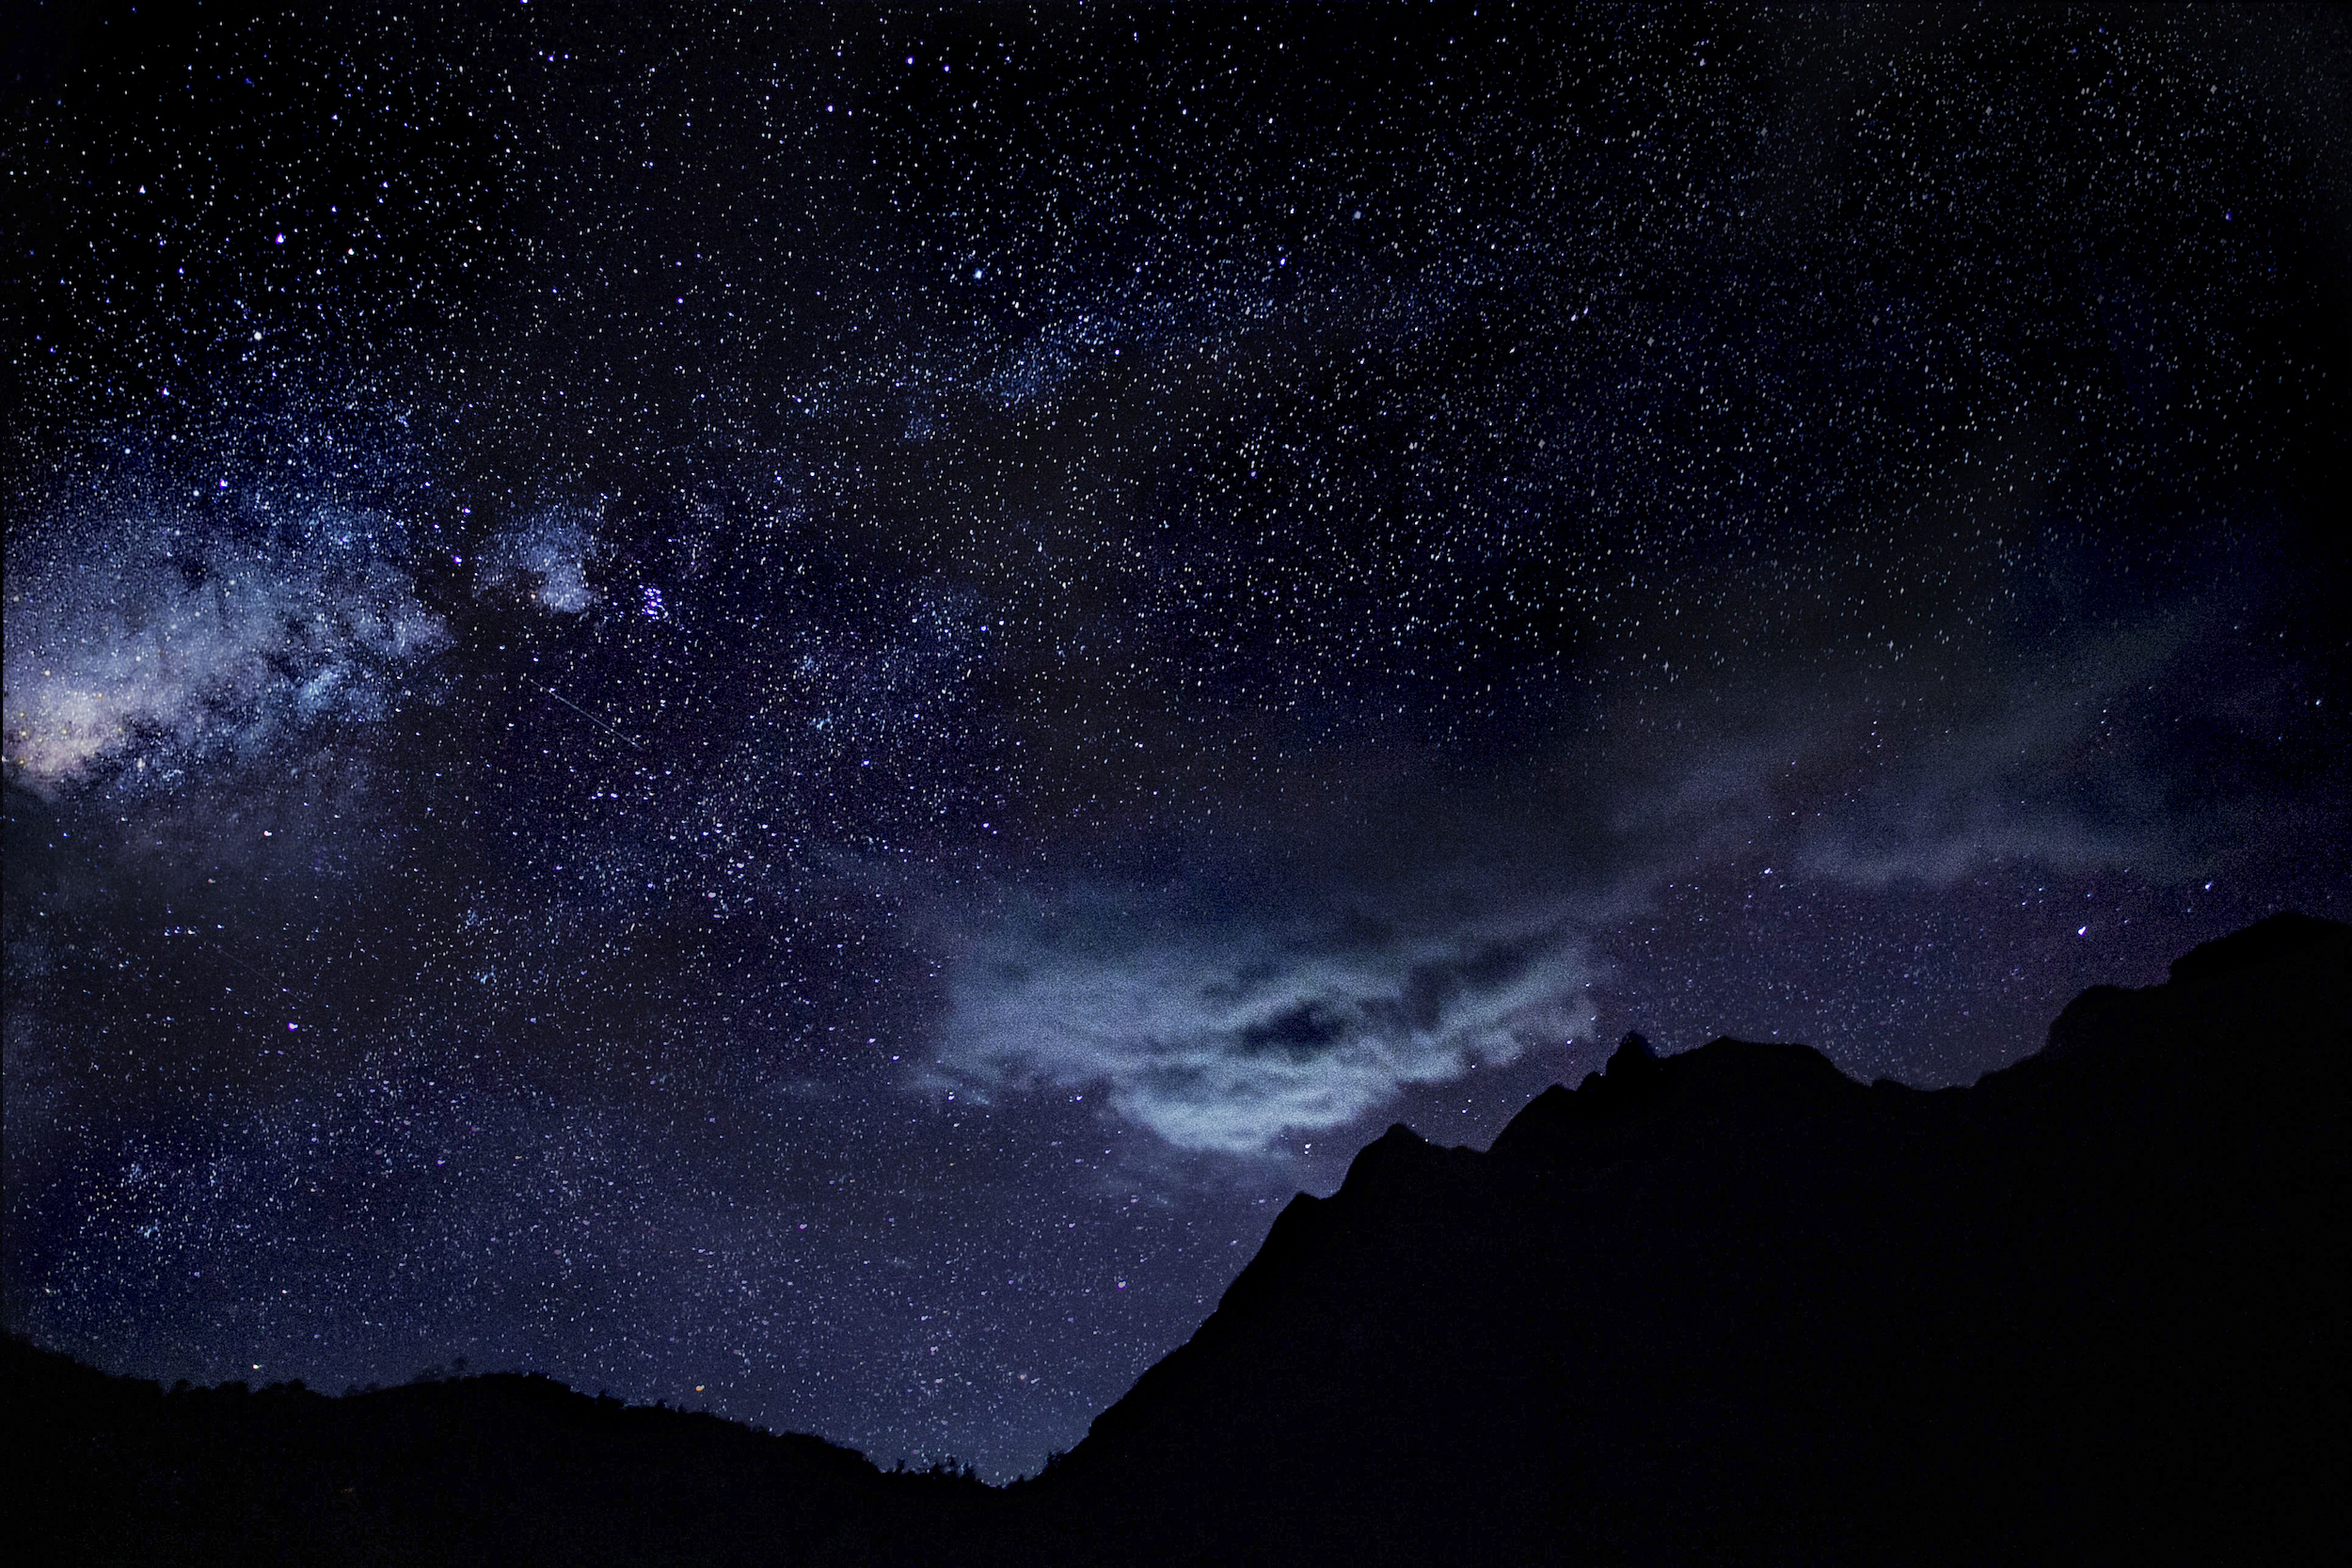 Stars in the sky at night, Thailand